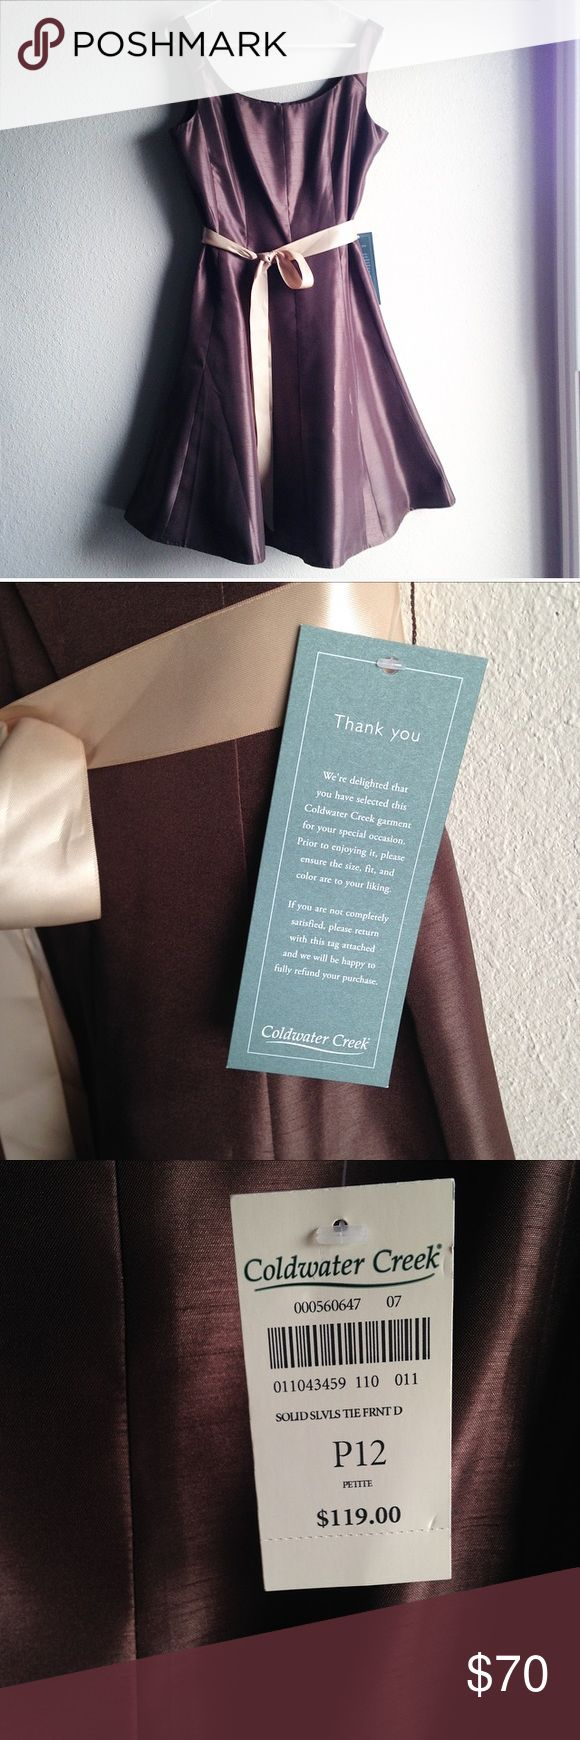 NWT Brown Coldwater creek dress size 12P This is new with tags never been worn Coldwater creek dress is perfect for any event :-) complete with a cream ribbon and a zipper in the back  petite size 12 women's dress will be great for your wardrobe. Coldwater Creek Dresses